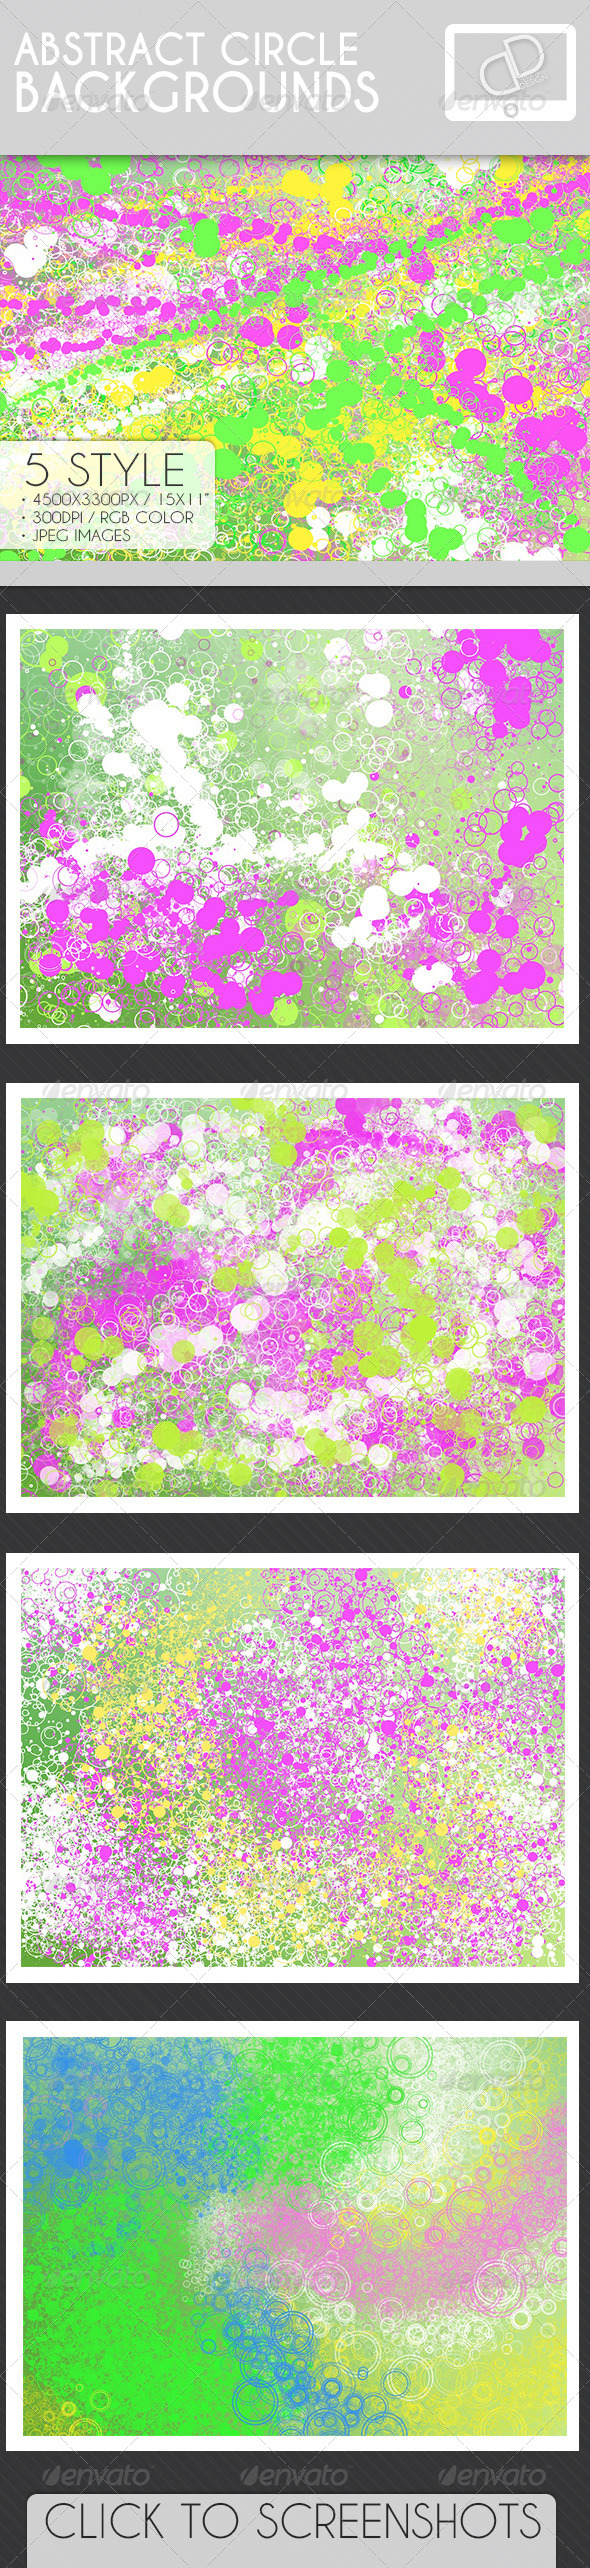 GraphicRiver Abstract Circle Backgrounds 7159155